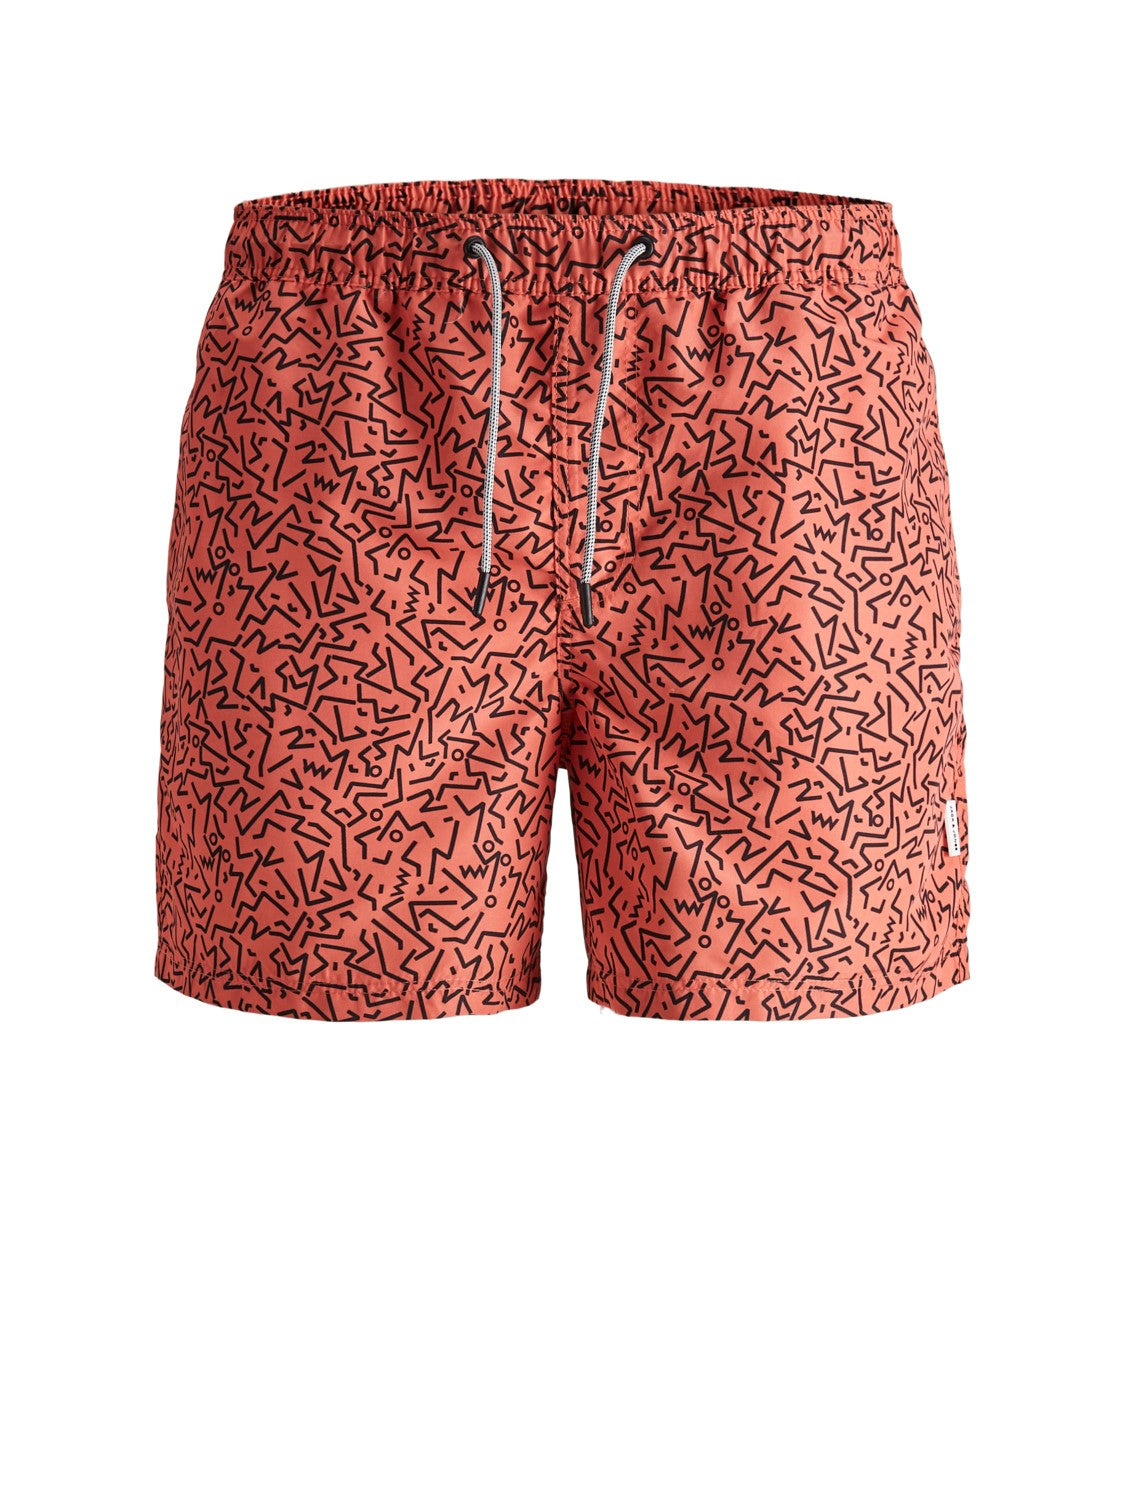 Maillot de bain Jack & Jones Aruba mini hot coral